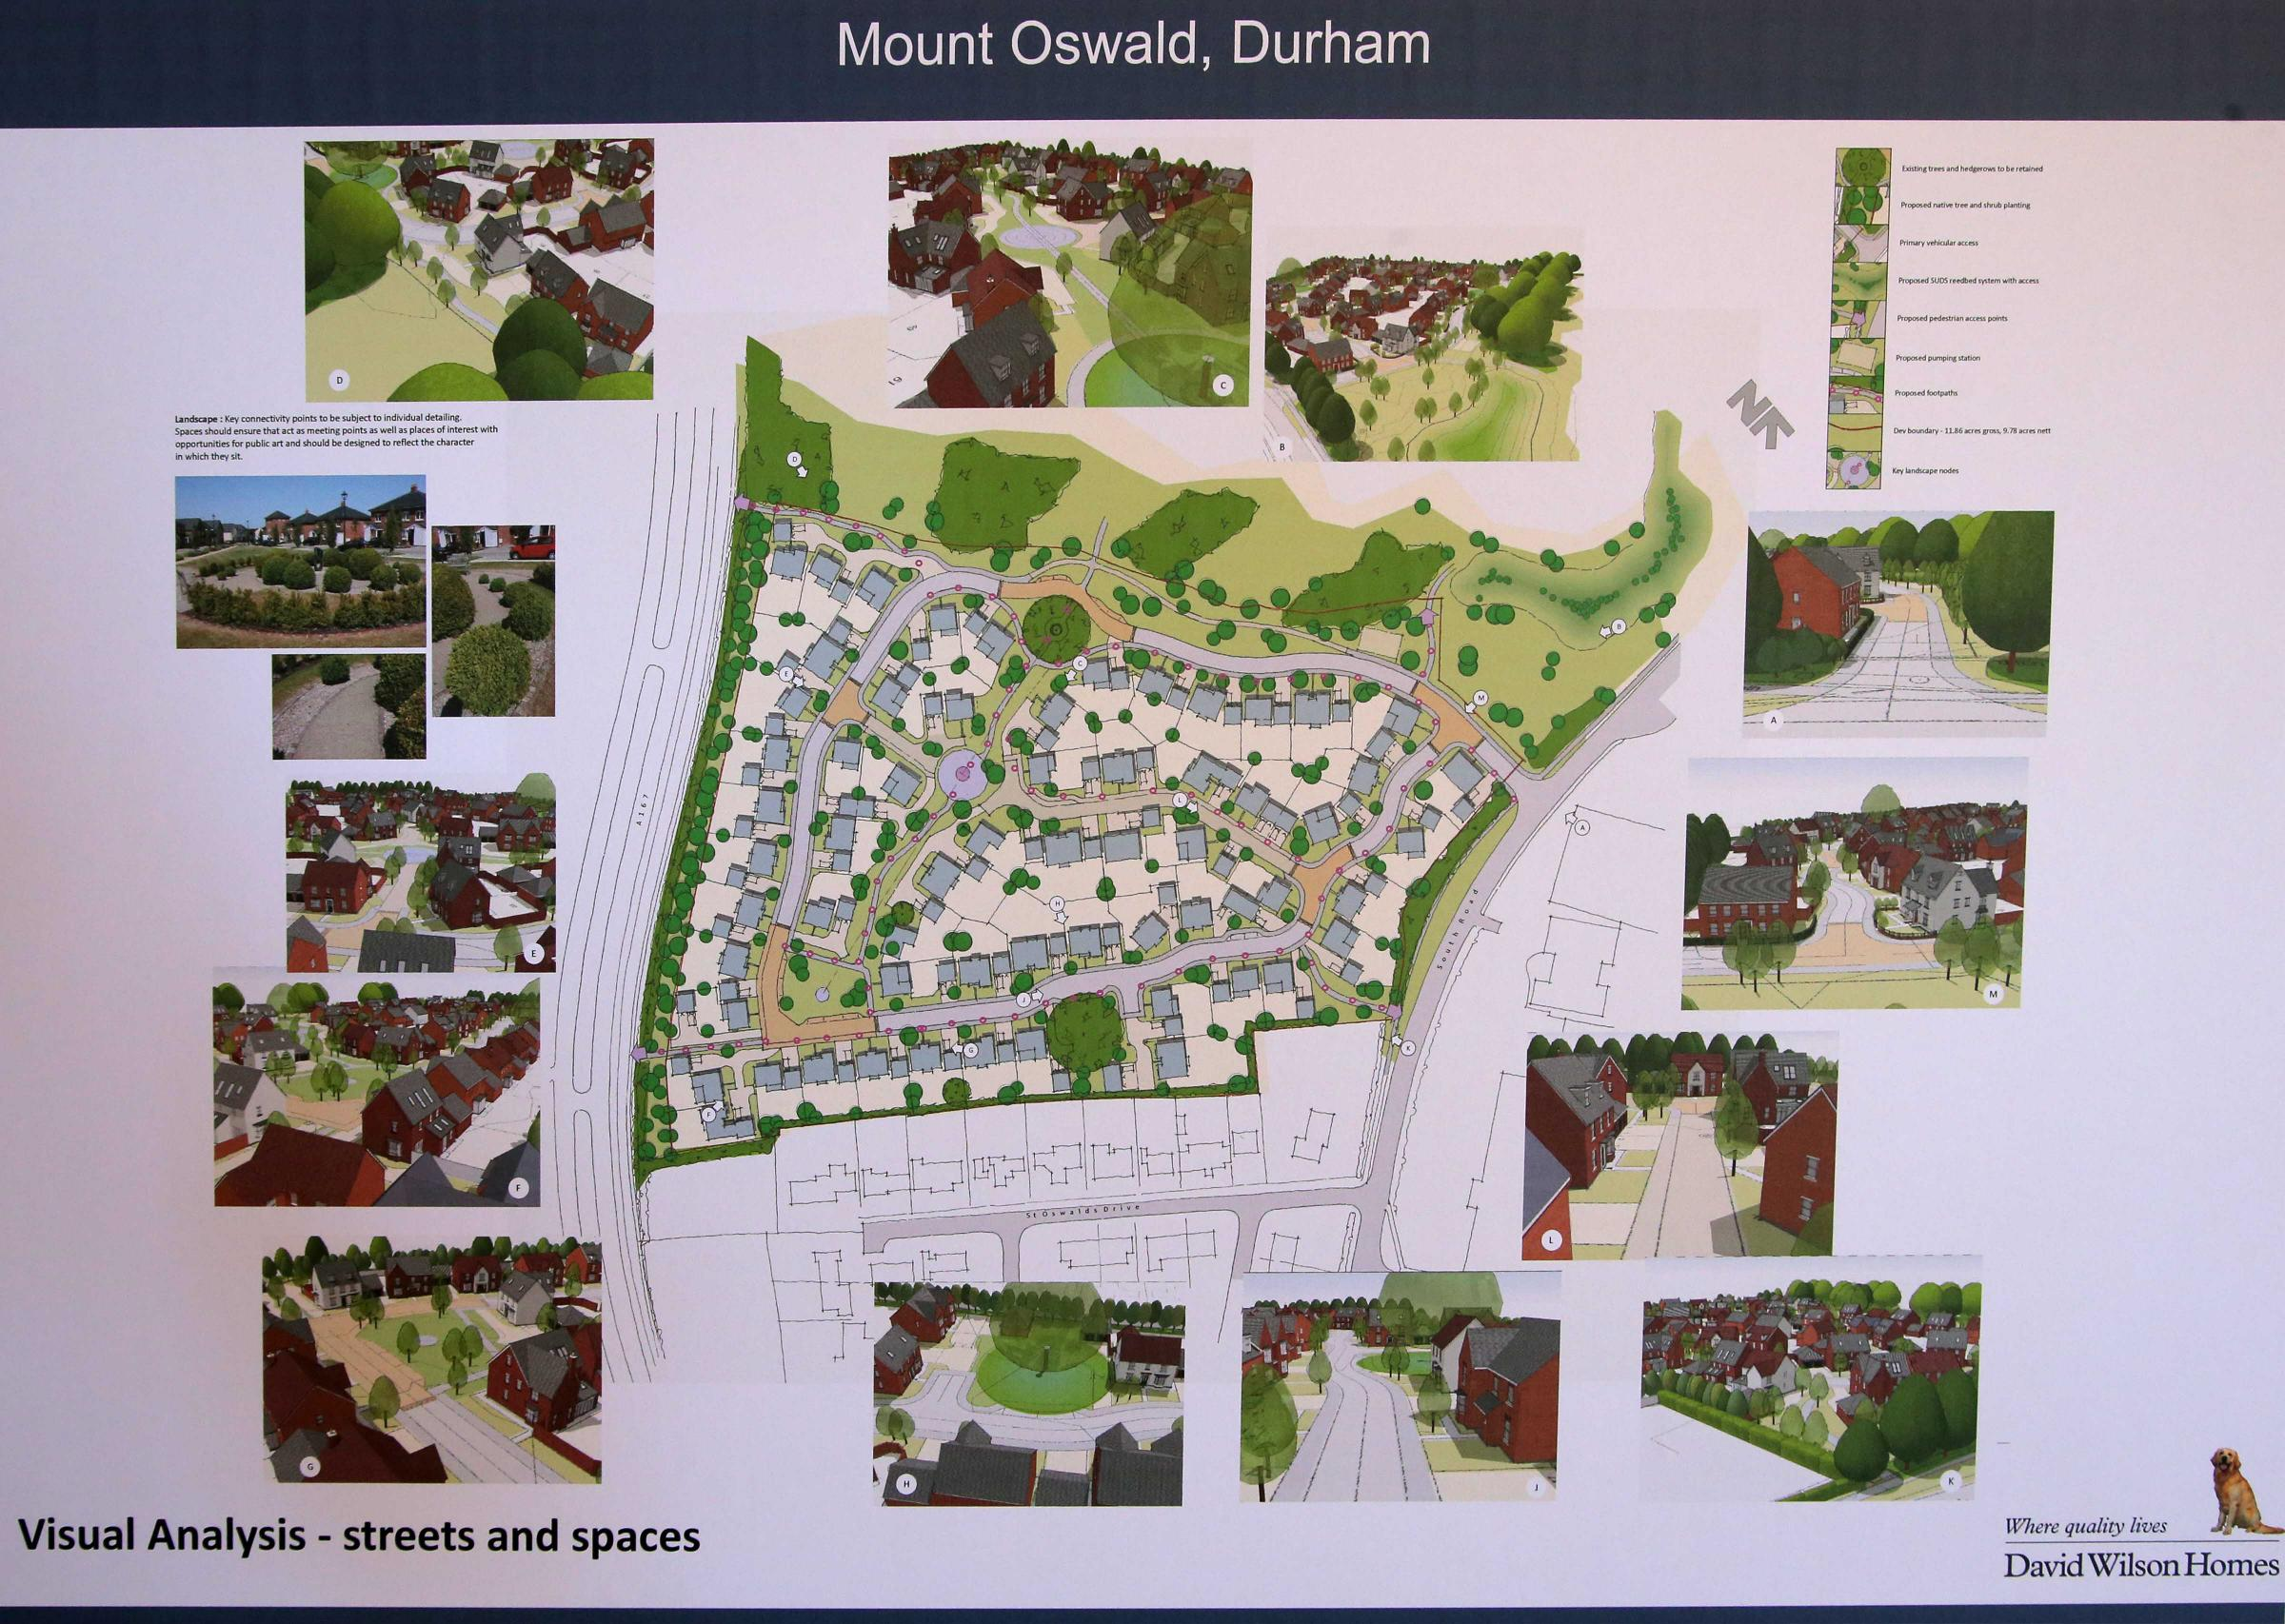 The plans for housing at Mount Oswald